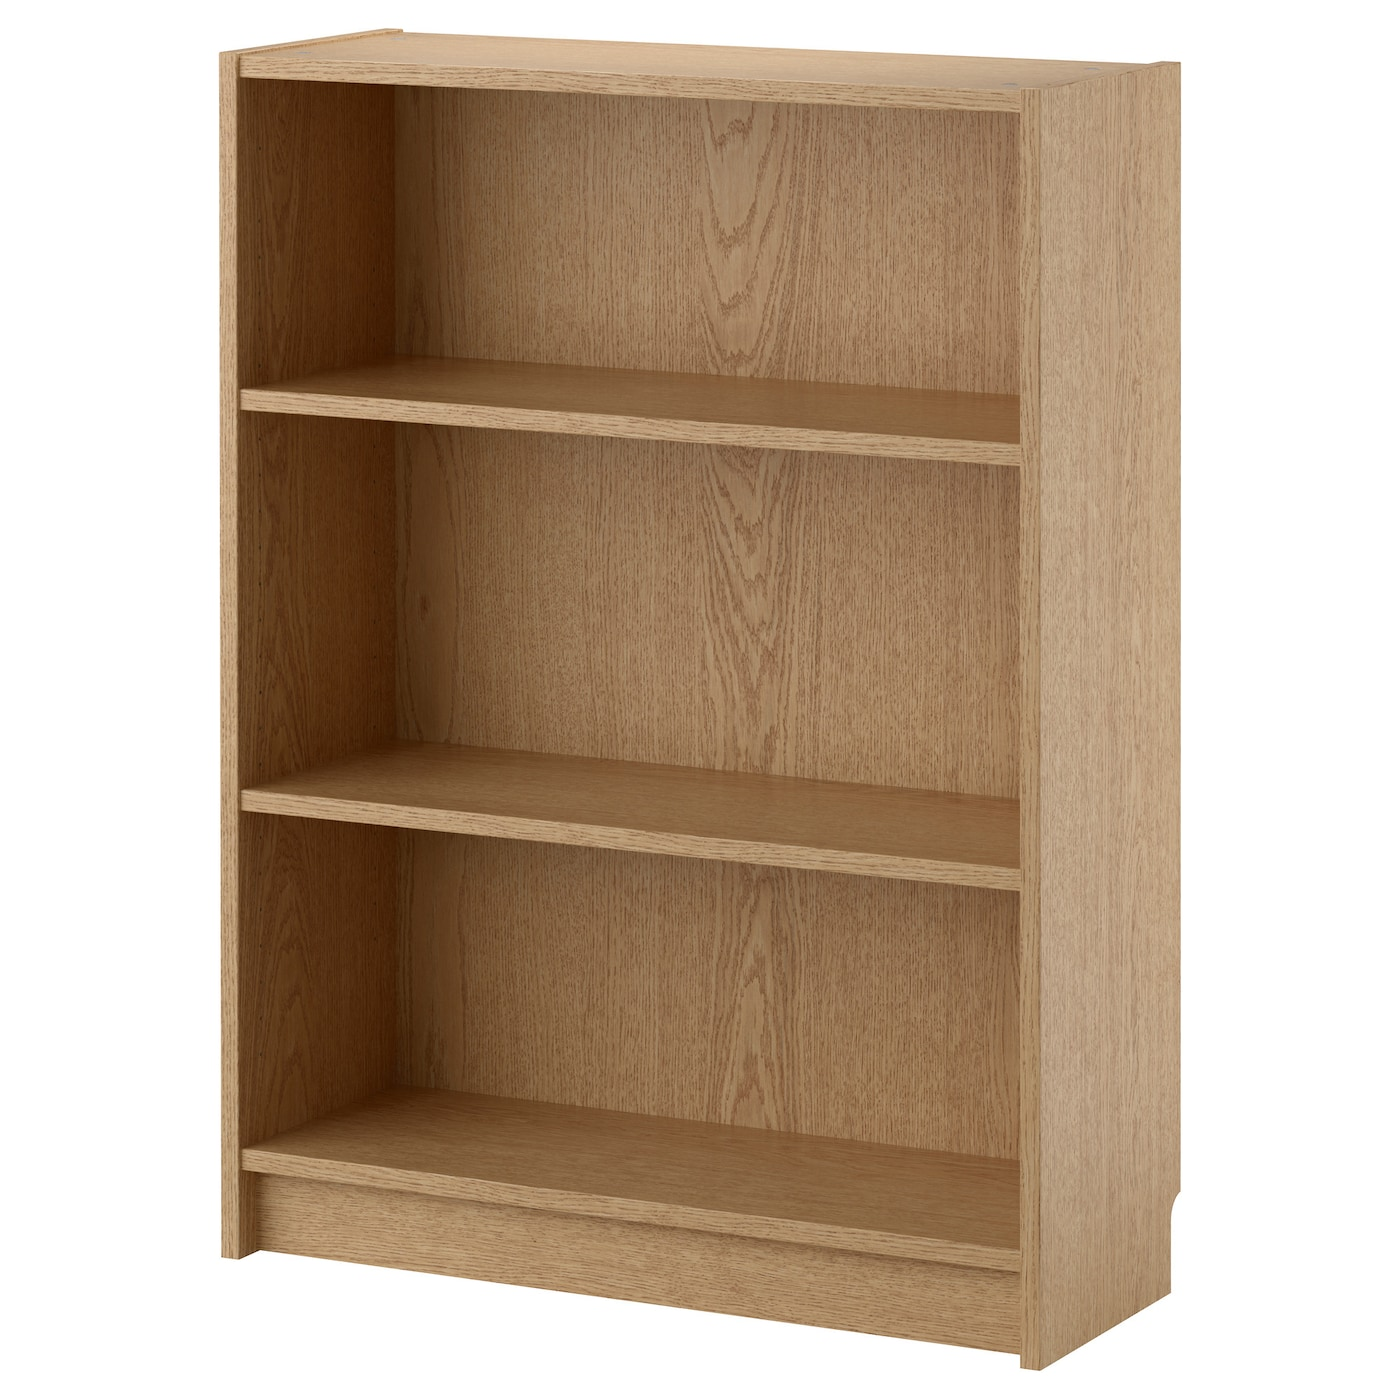 Billy bookcase oak veneer 80x28x106 cm ikea How deep should a bookshelf be